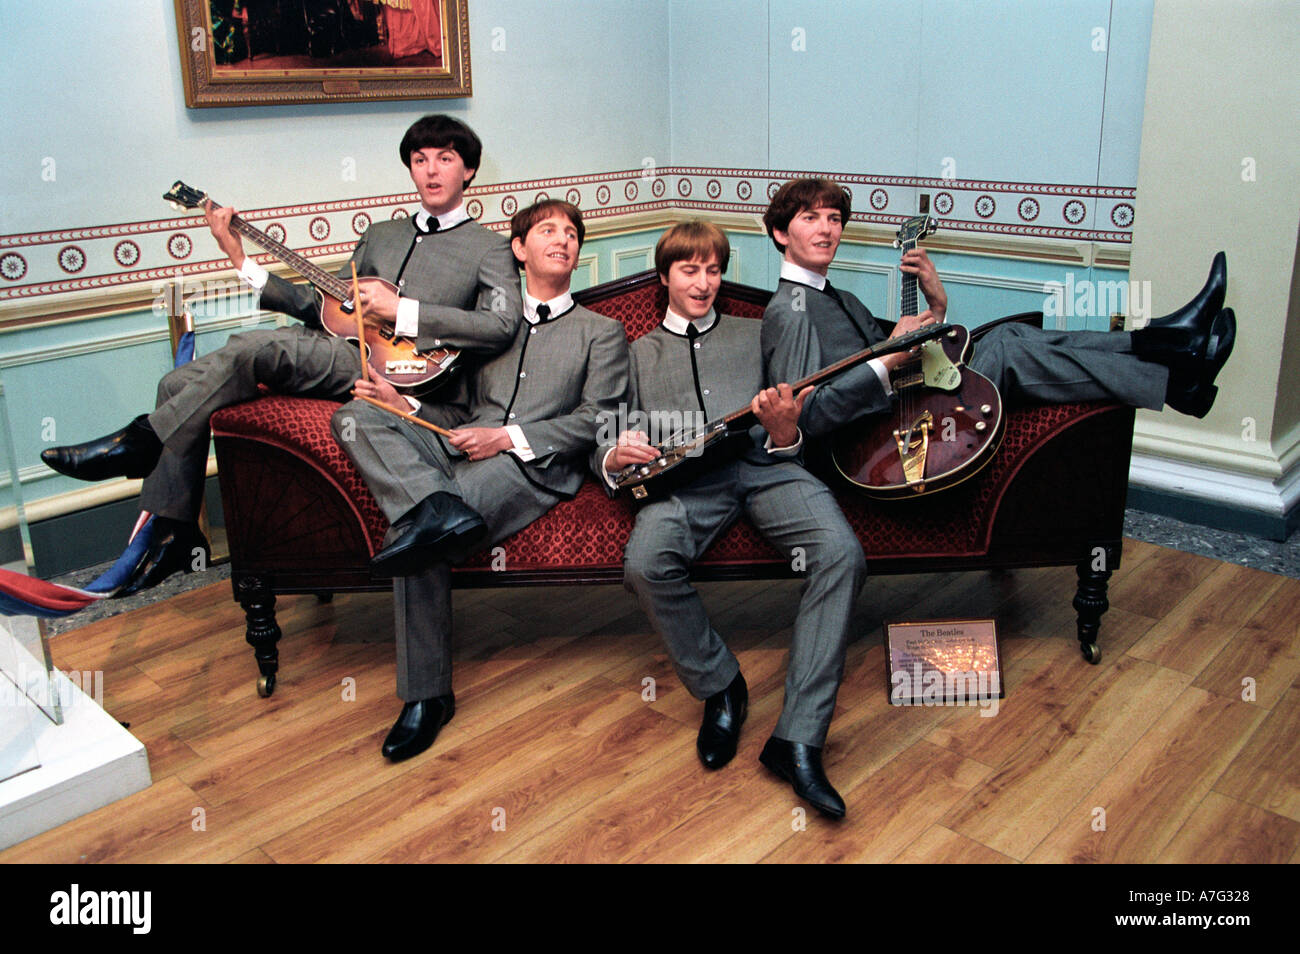 Beatles at Madame Tussauds London - Stock Image